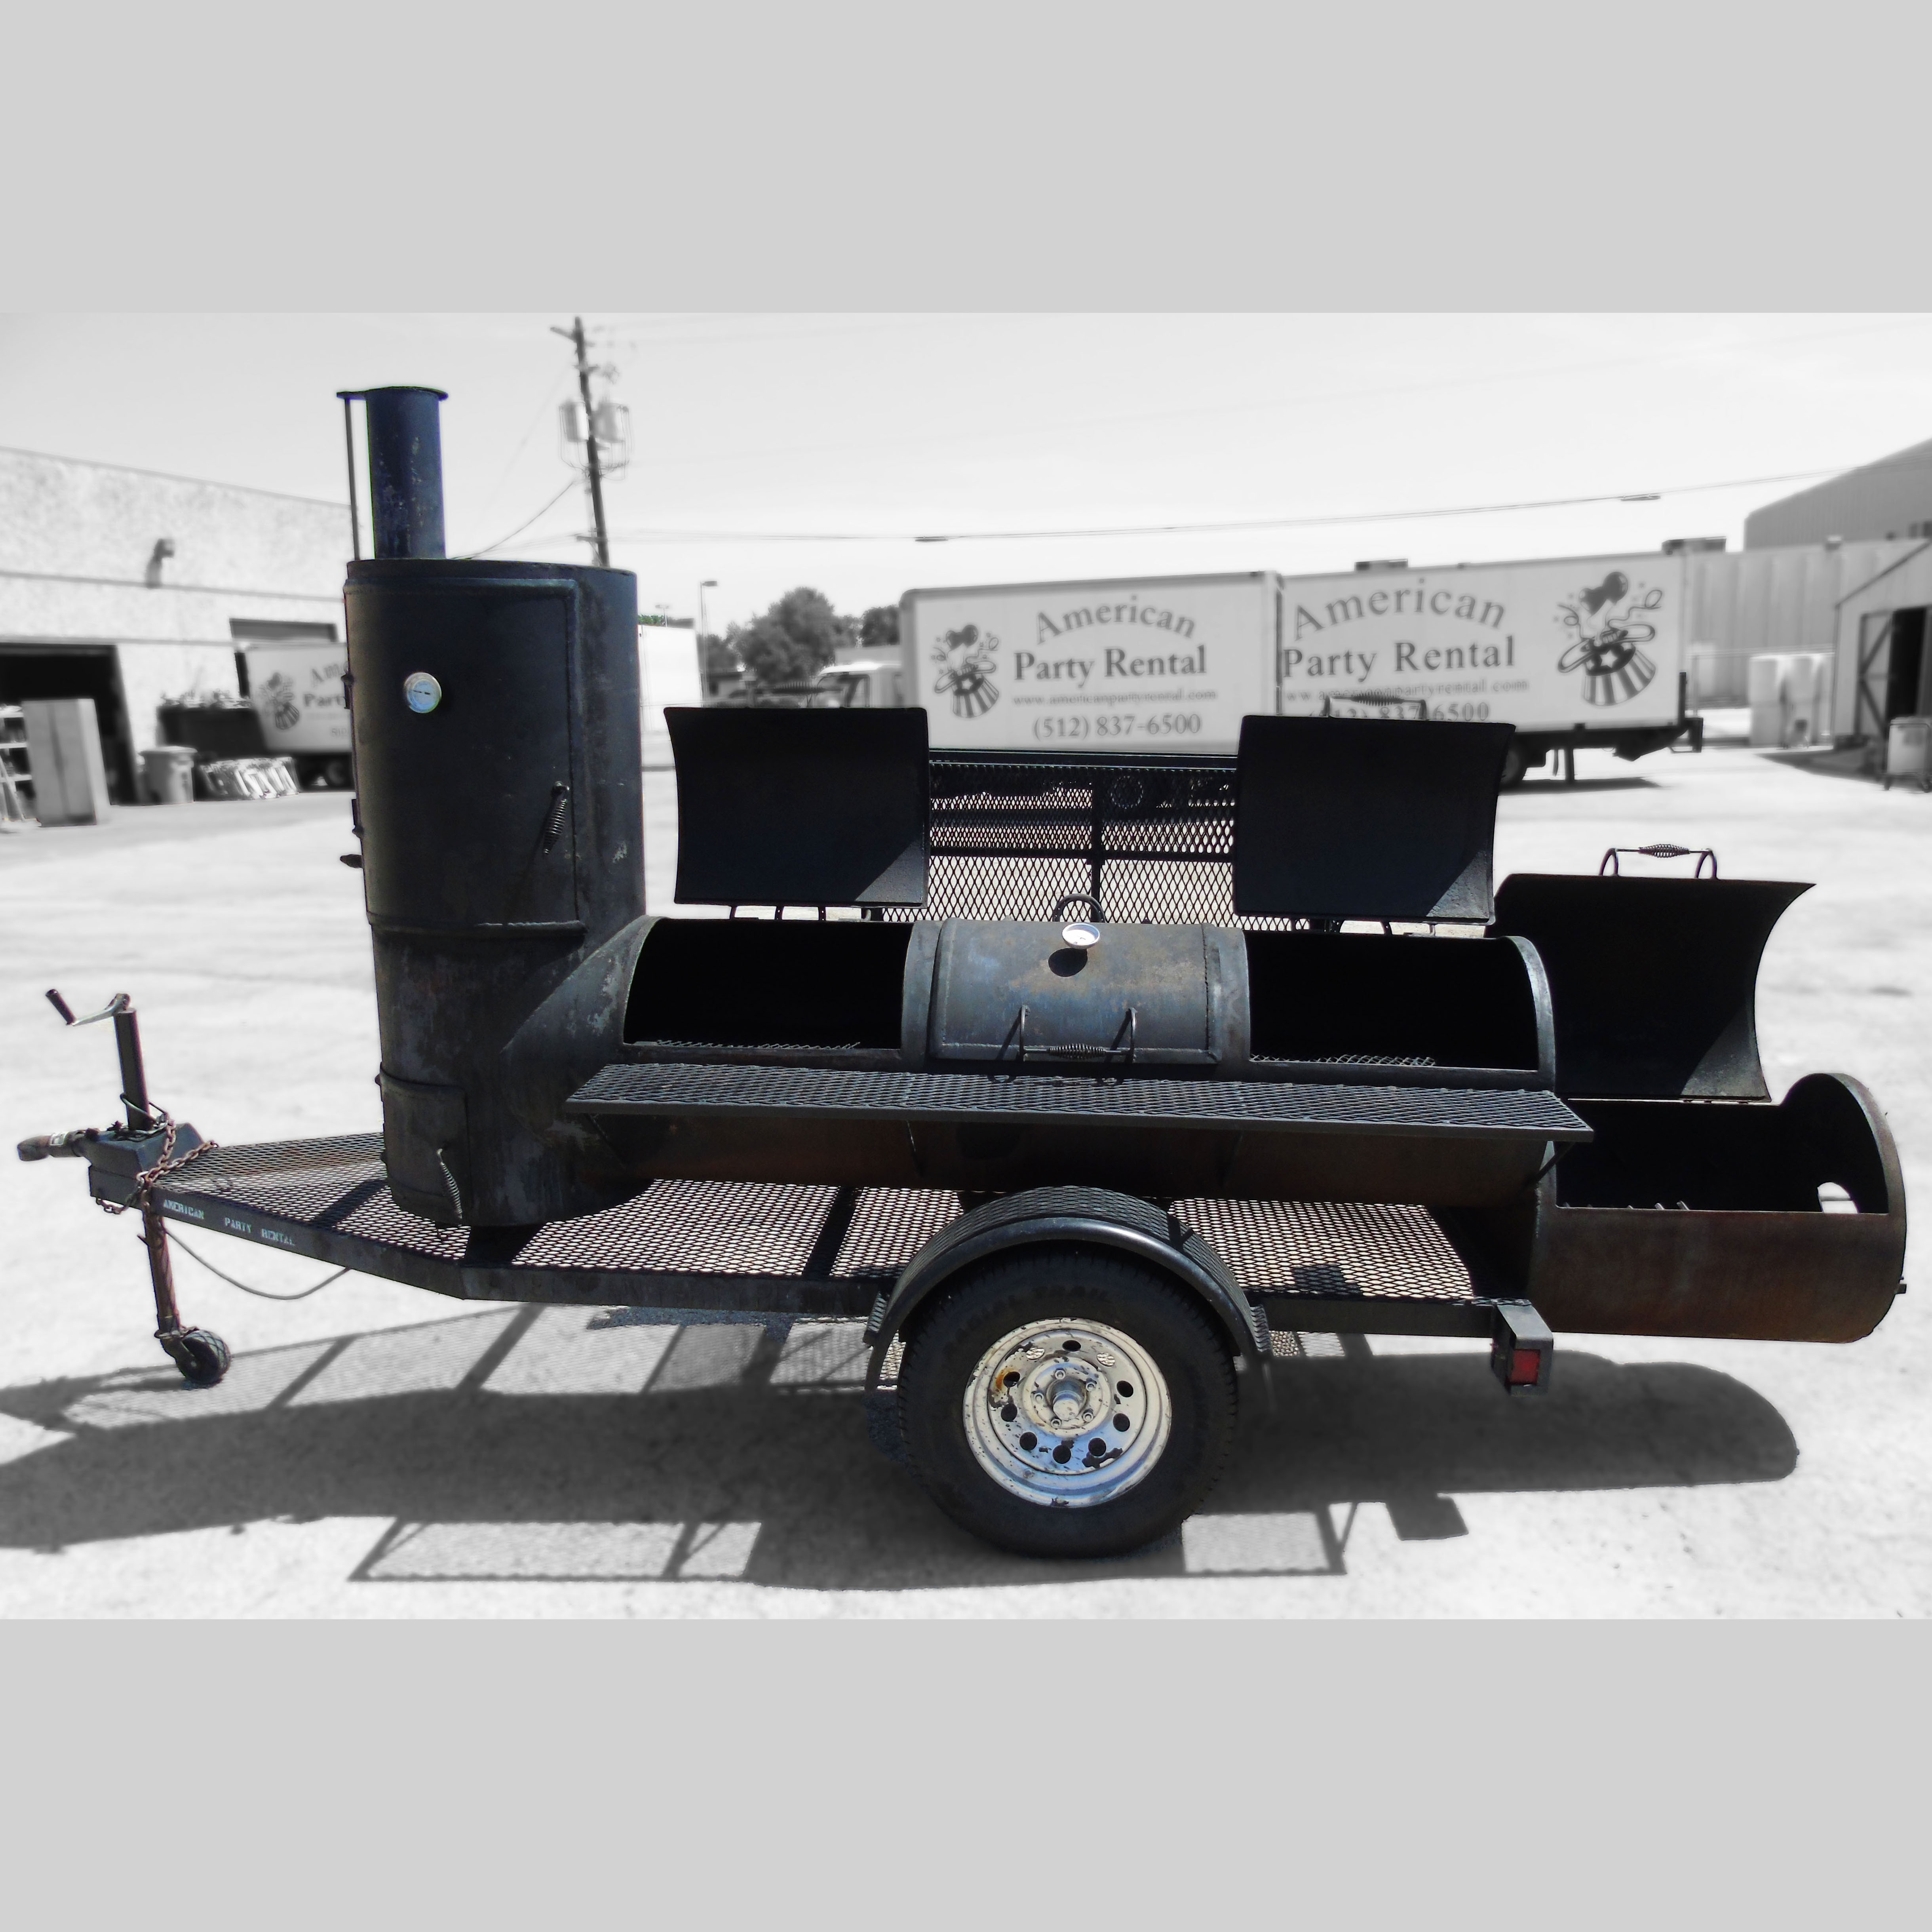 barbecue grills smokers quotes. Black Bedroom Furniture Sets. Home Design Ideas